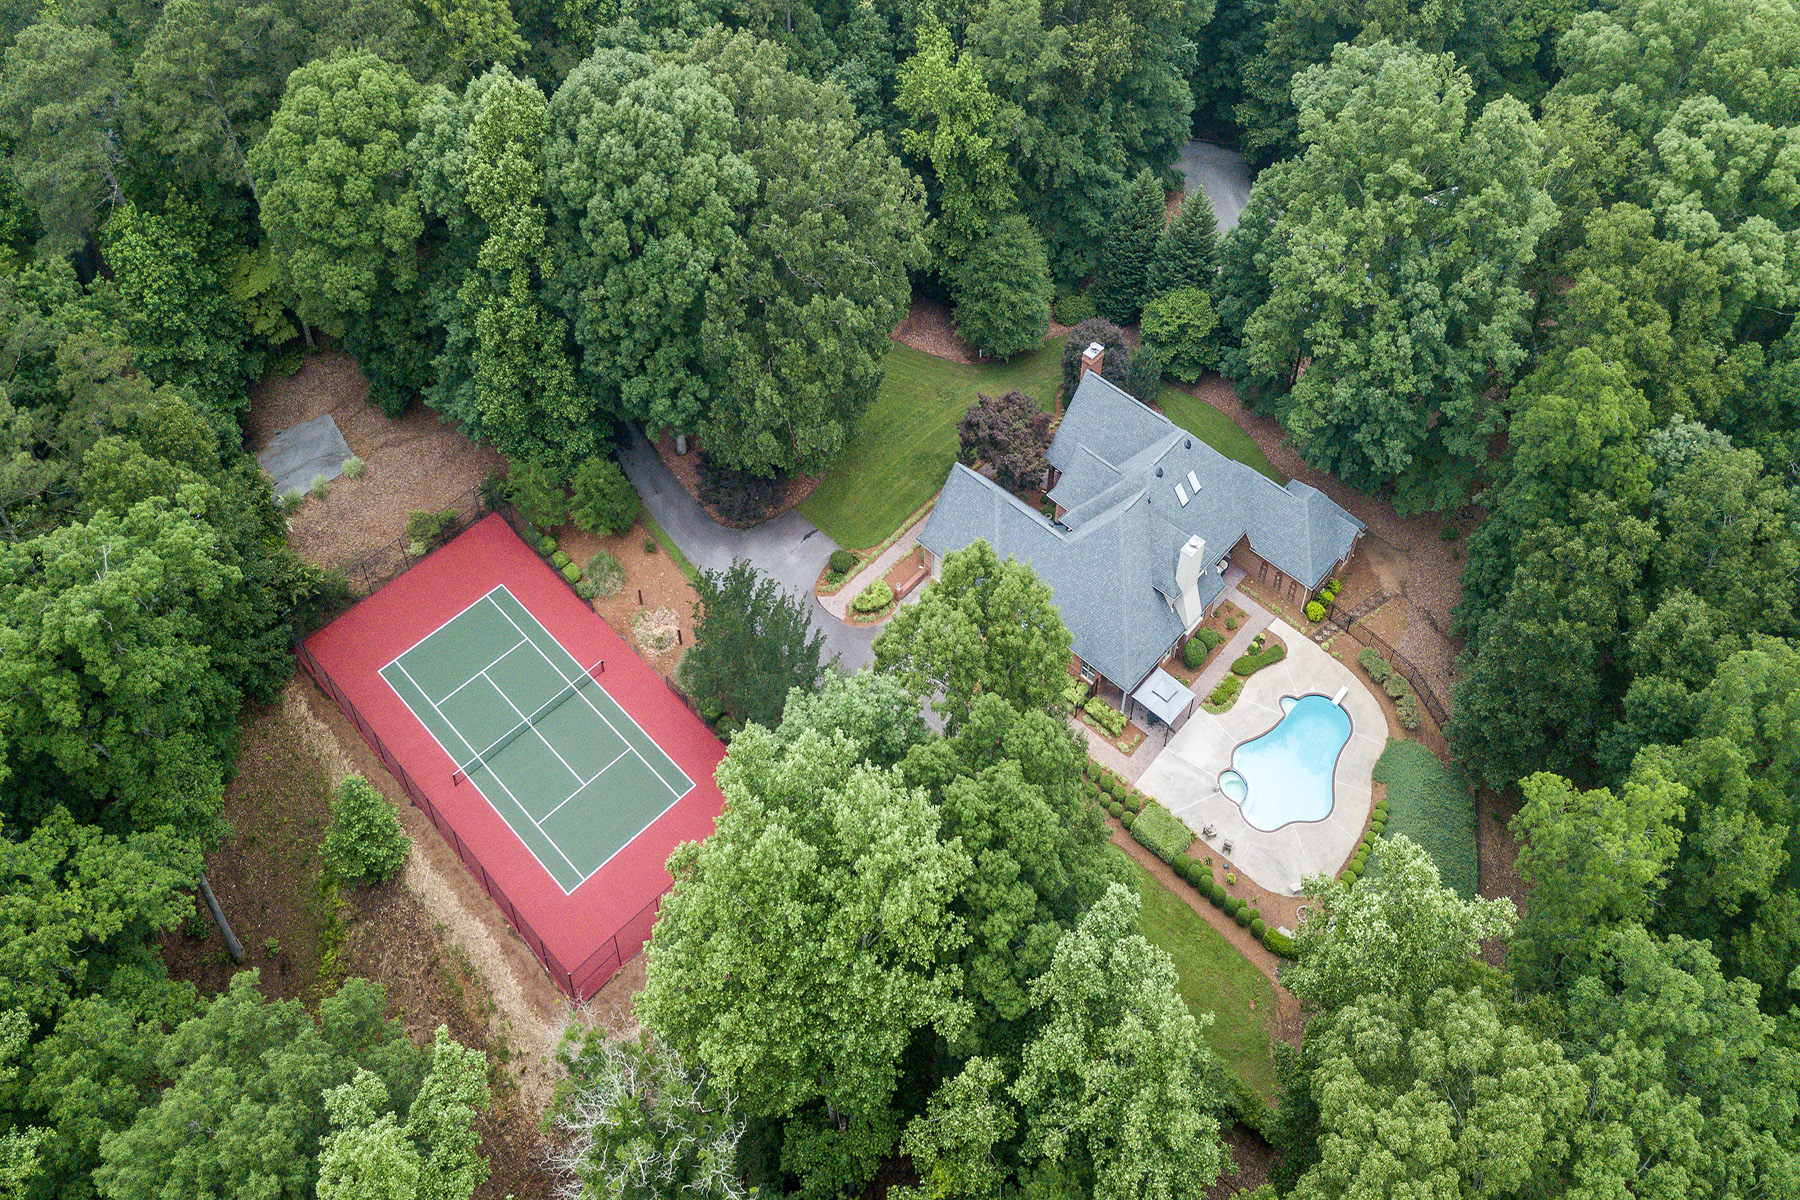 Maison unifamiliale pour l Vente à Luxury Estate on 50 Plus Acres With Tennis Court, Pool, and Pond! 3486 Jonesboro Road Hampton, Georgia 30228 États-Unis